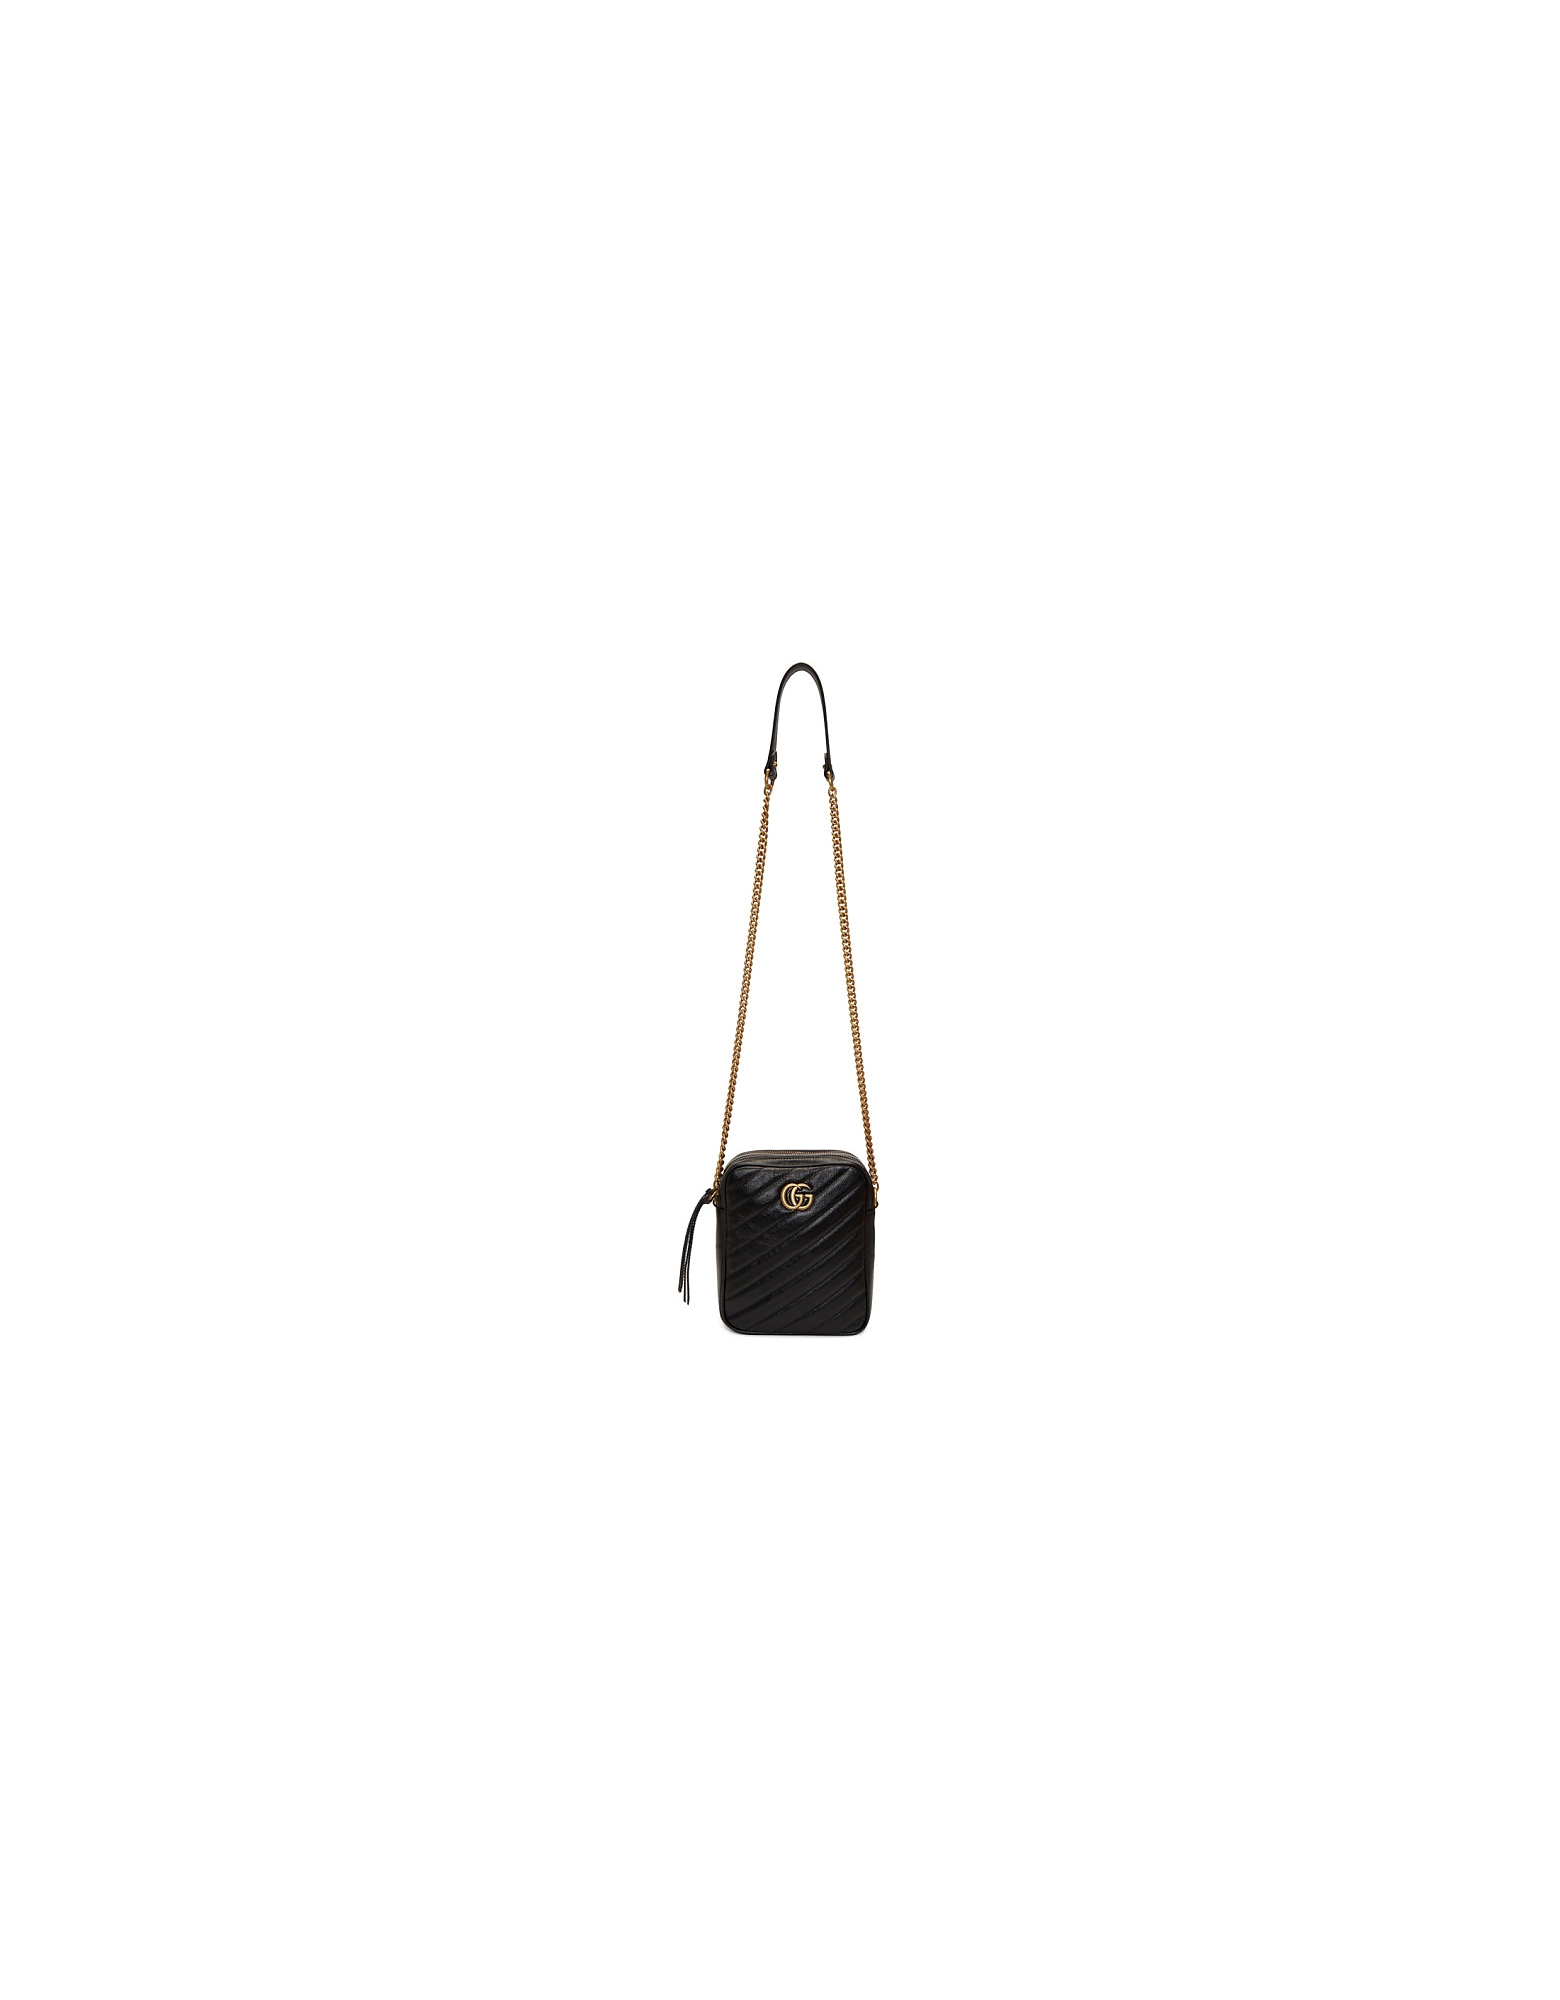 Gucci Designer Handbags, Black Mini GG Marmont Crossbody Bag